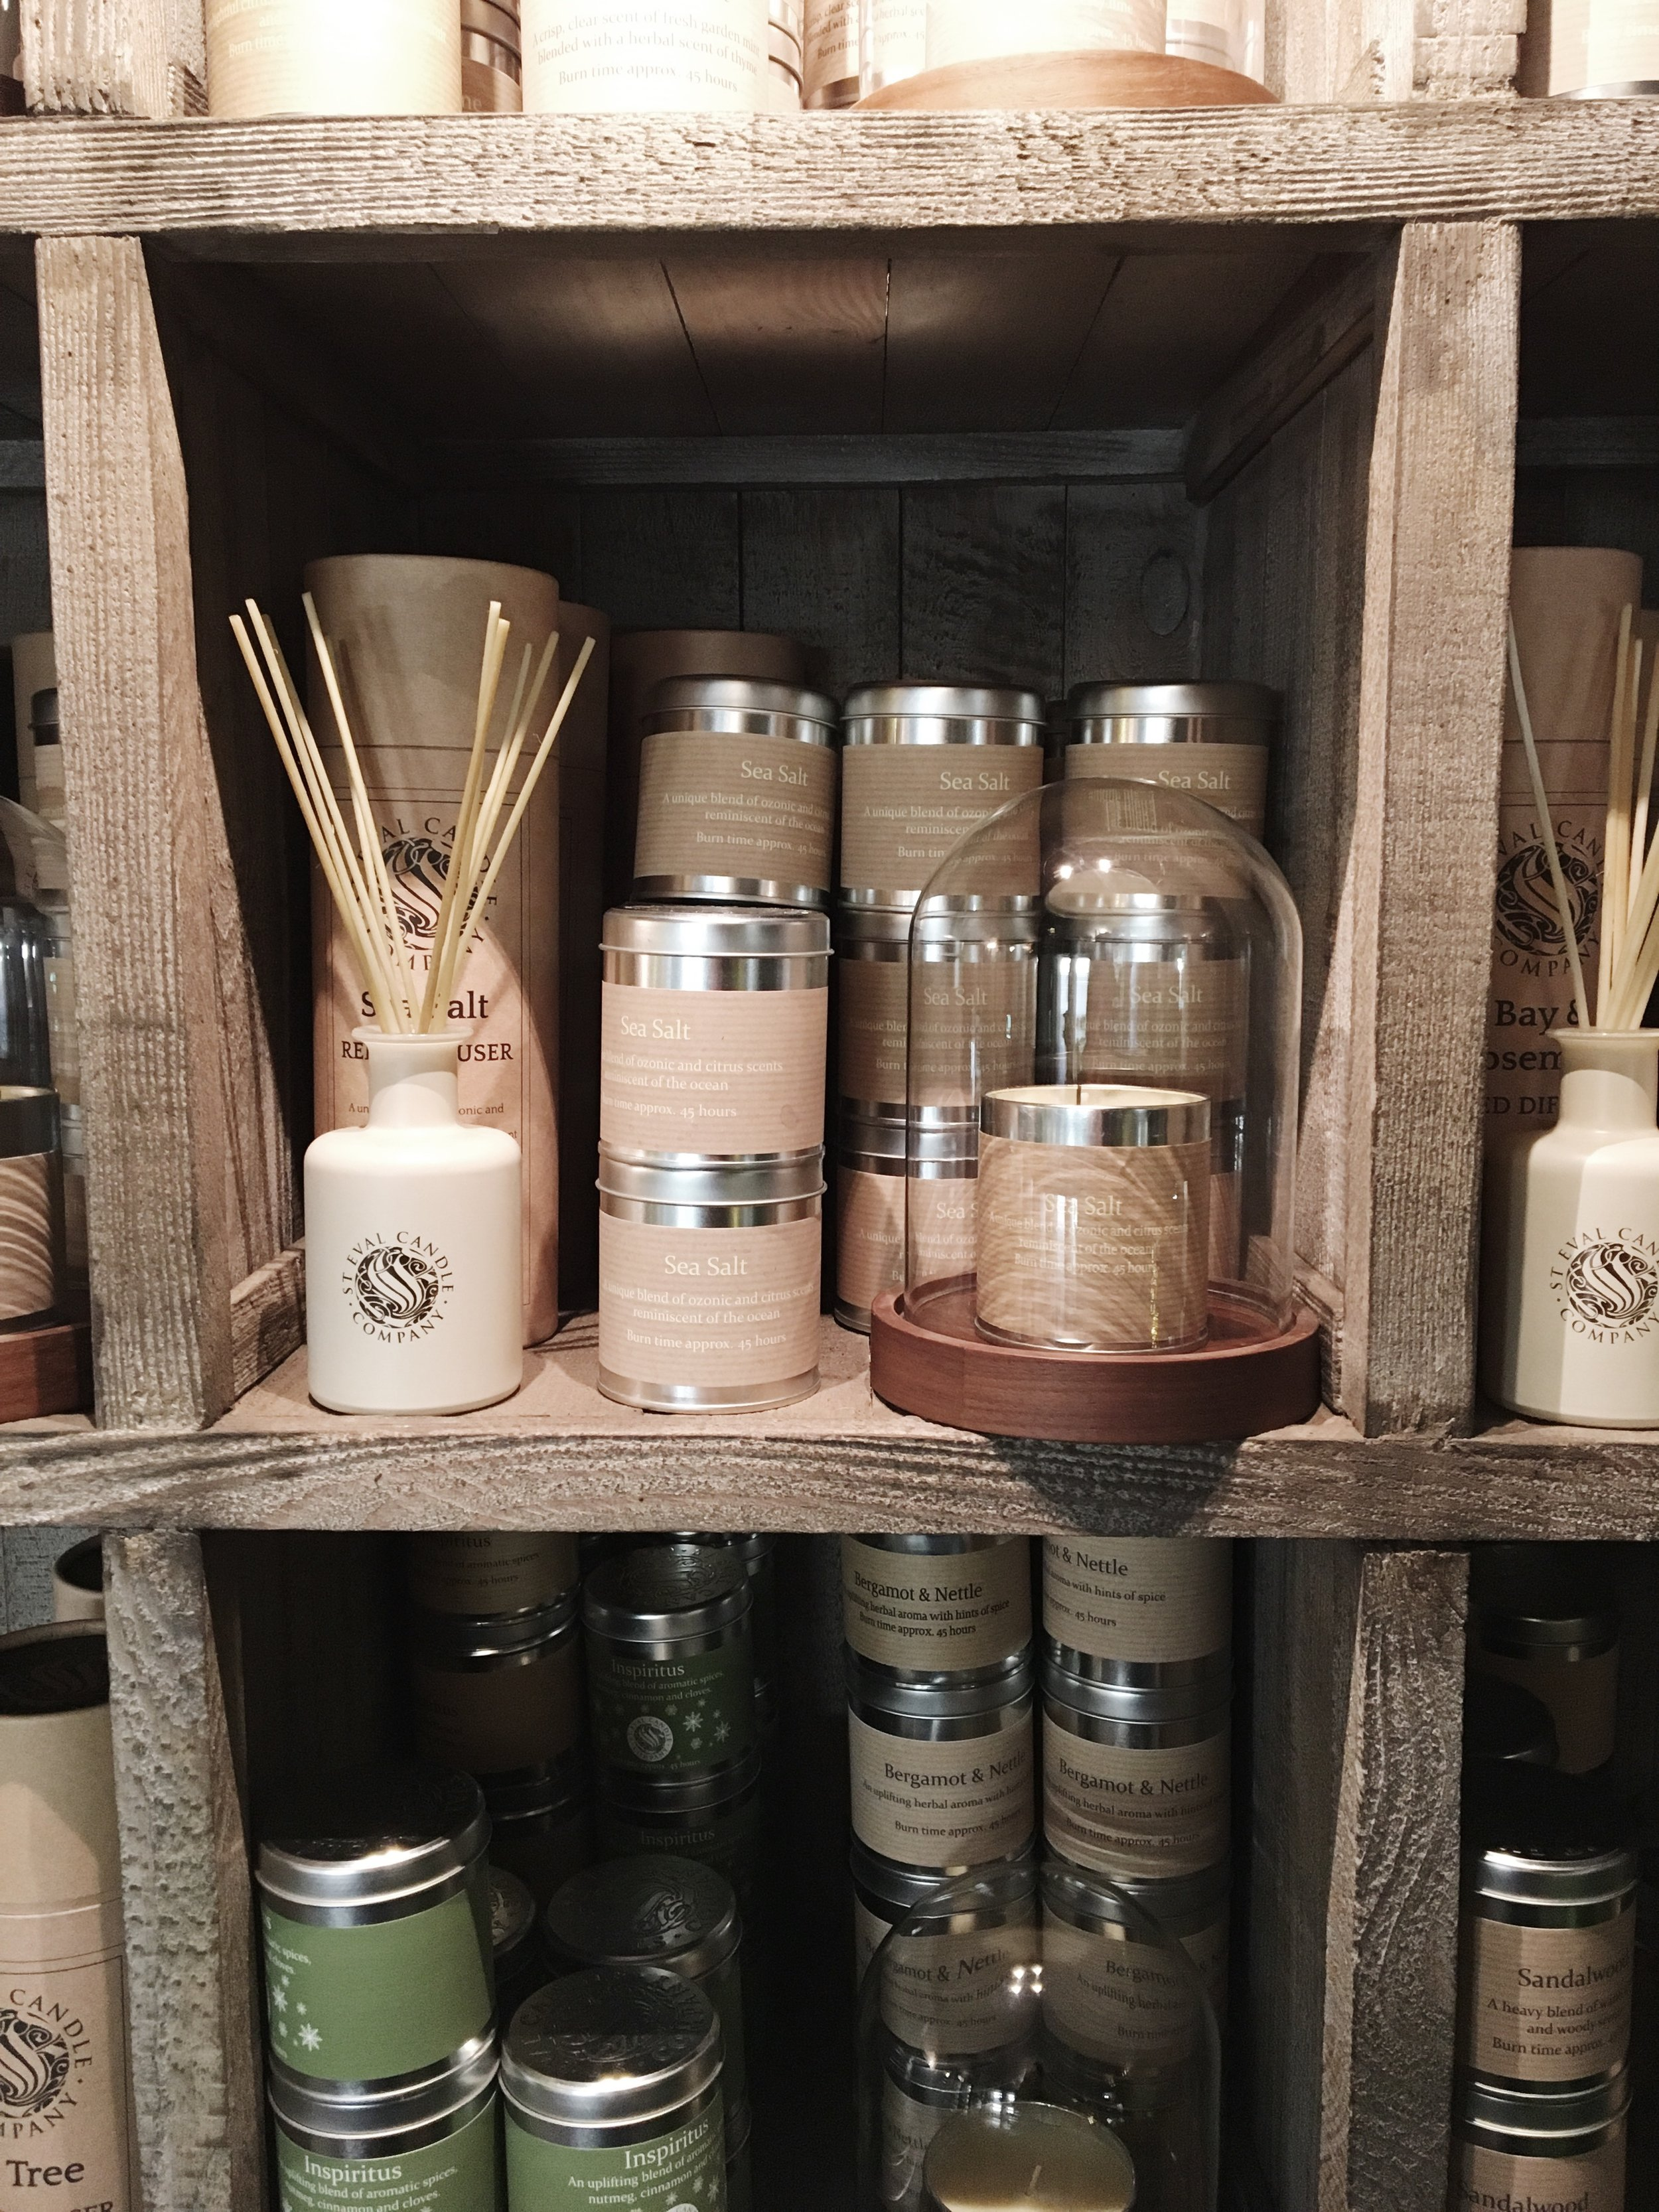 The cosy space is filled with the aroma of earthy candles